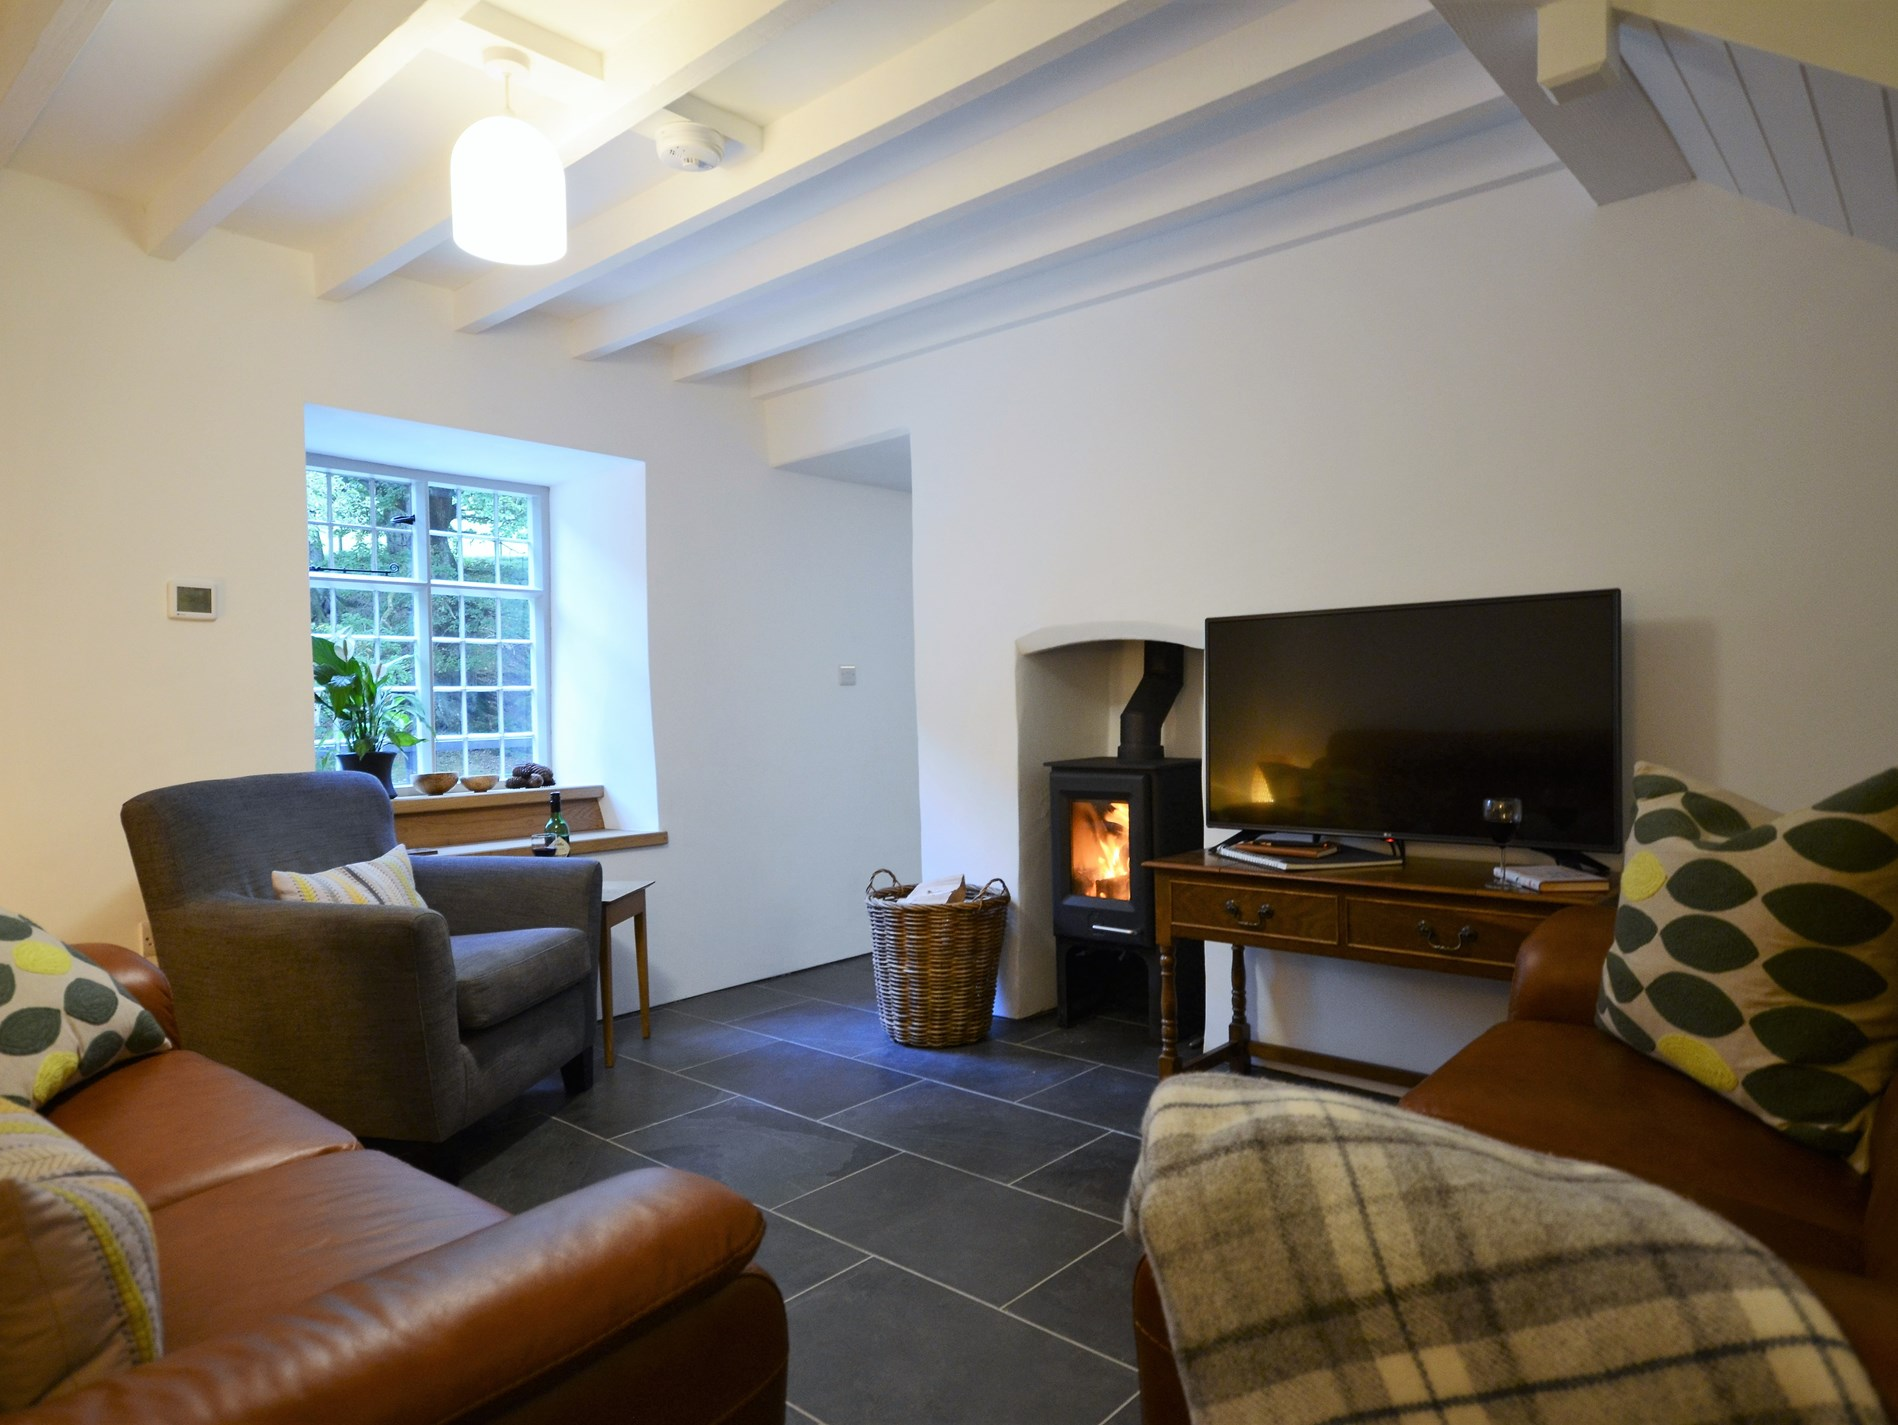 Cosy lounge, perfect for curling up in front of the woodburner